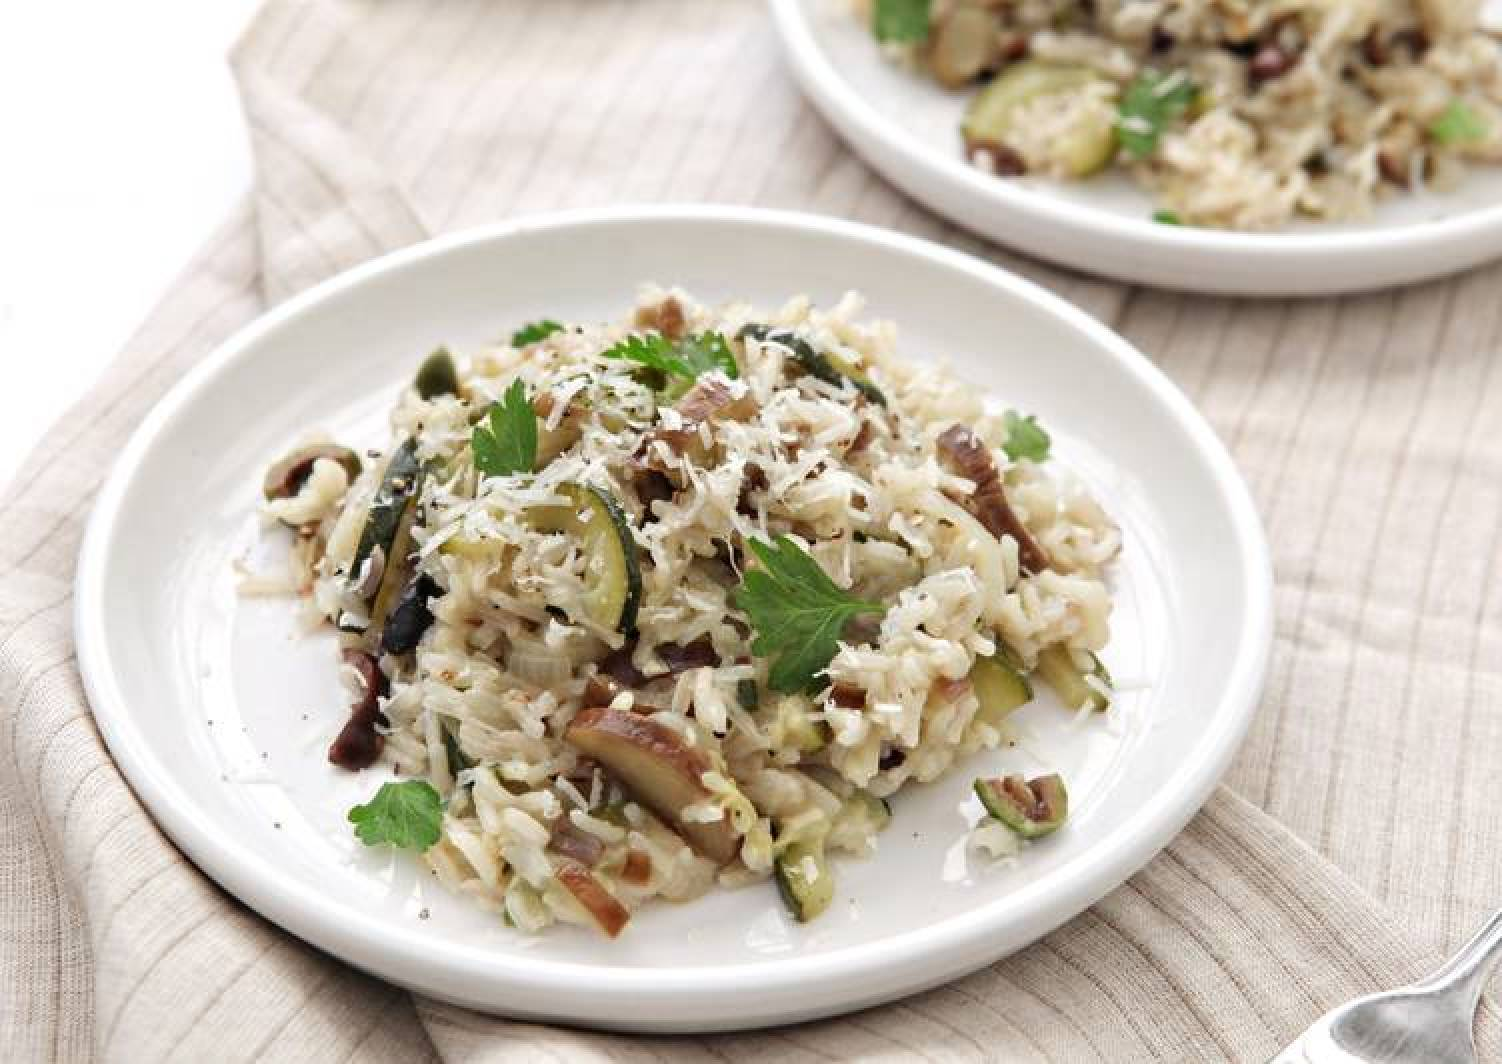 Japanese Eggplant, Zucchini, and Olive Rice with Marjoram and Parmesan